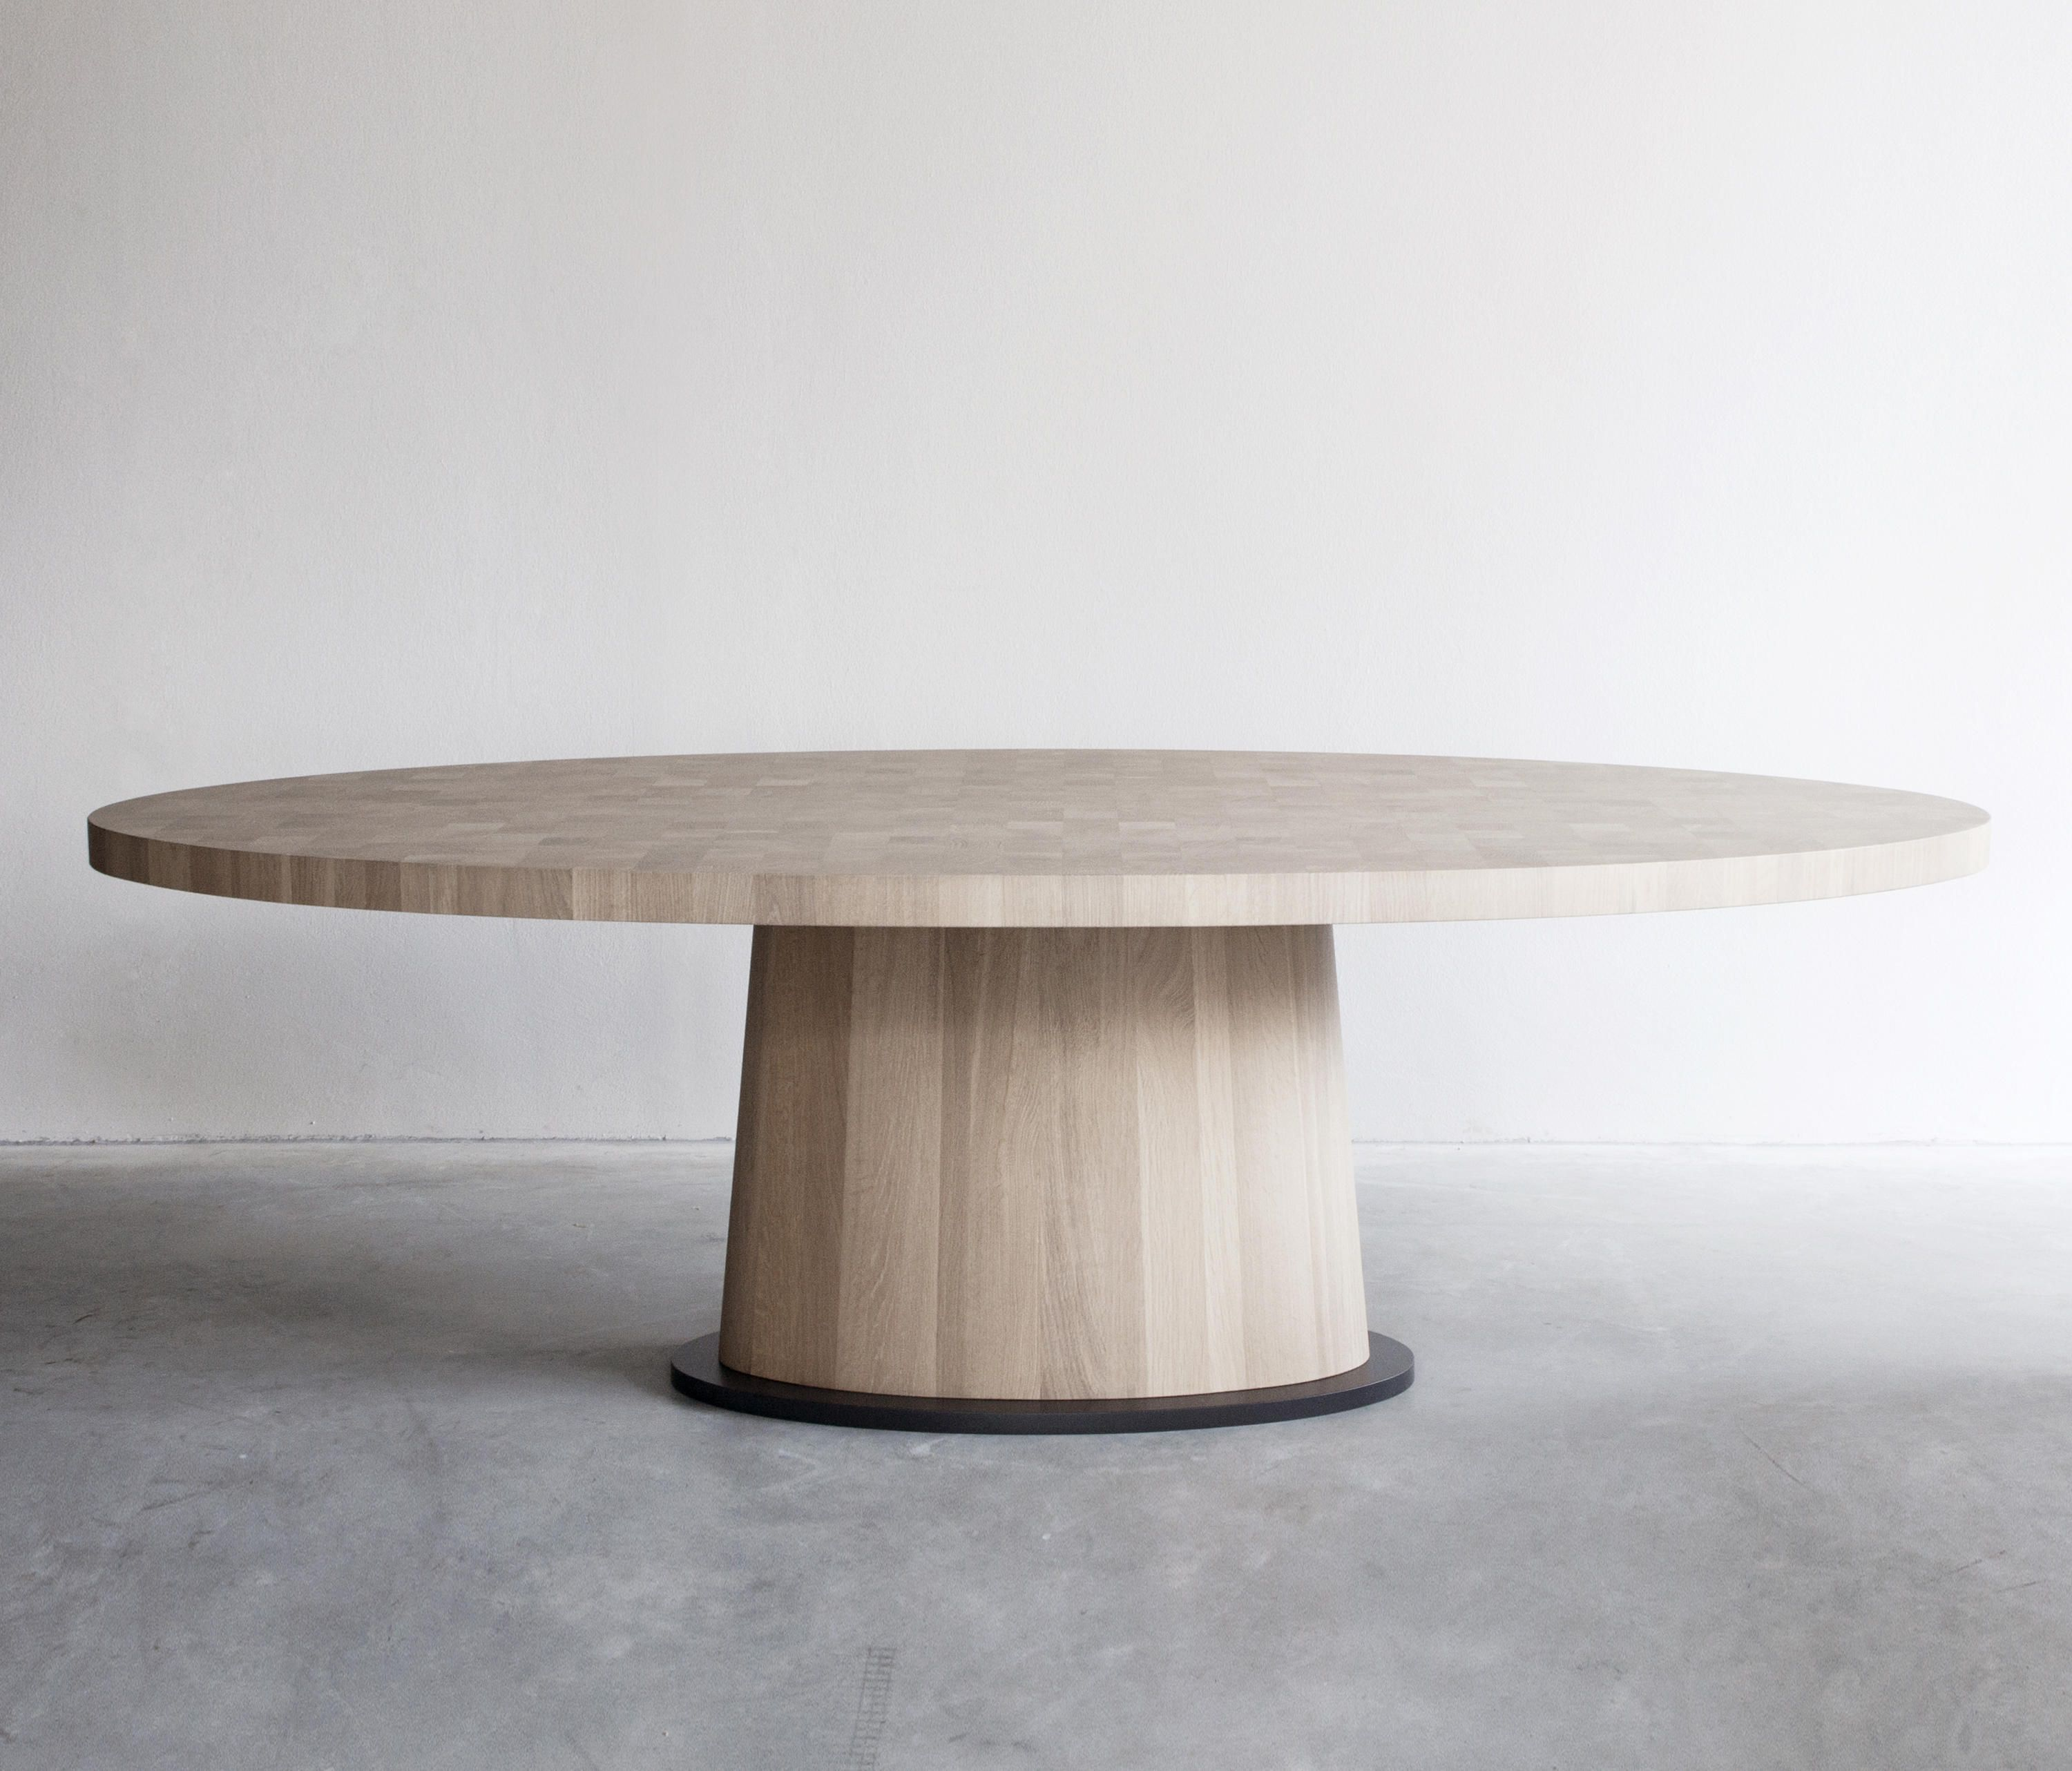 KOPS DINING TABLE OVAL - Designer Dining tables from Van Rossum ...